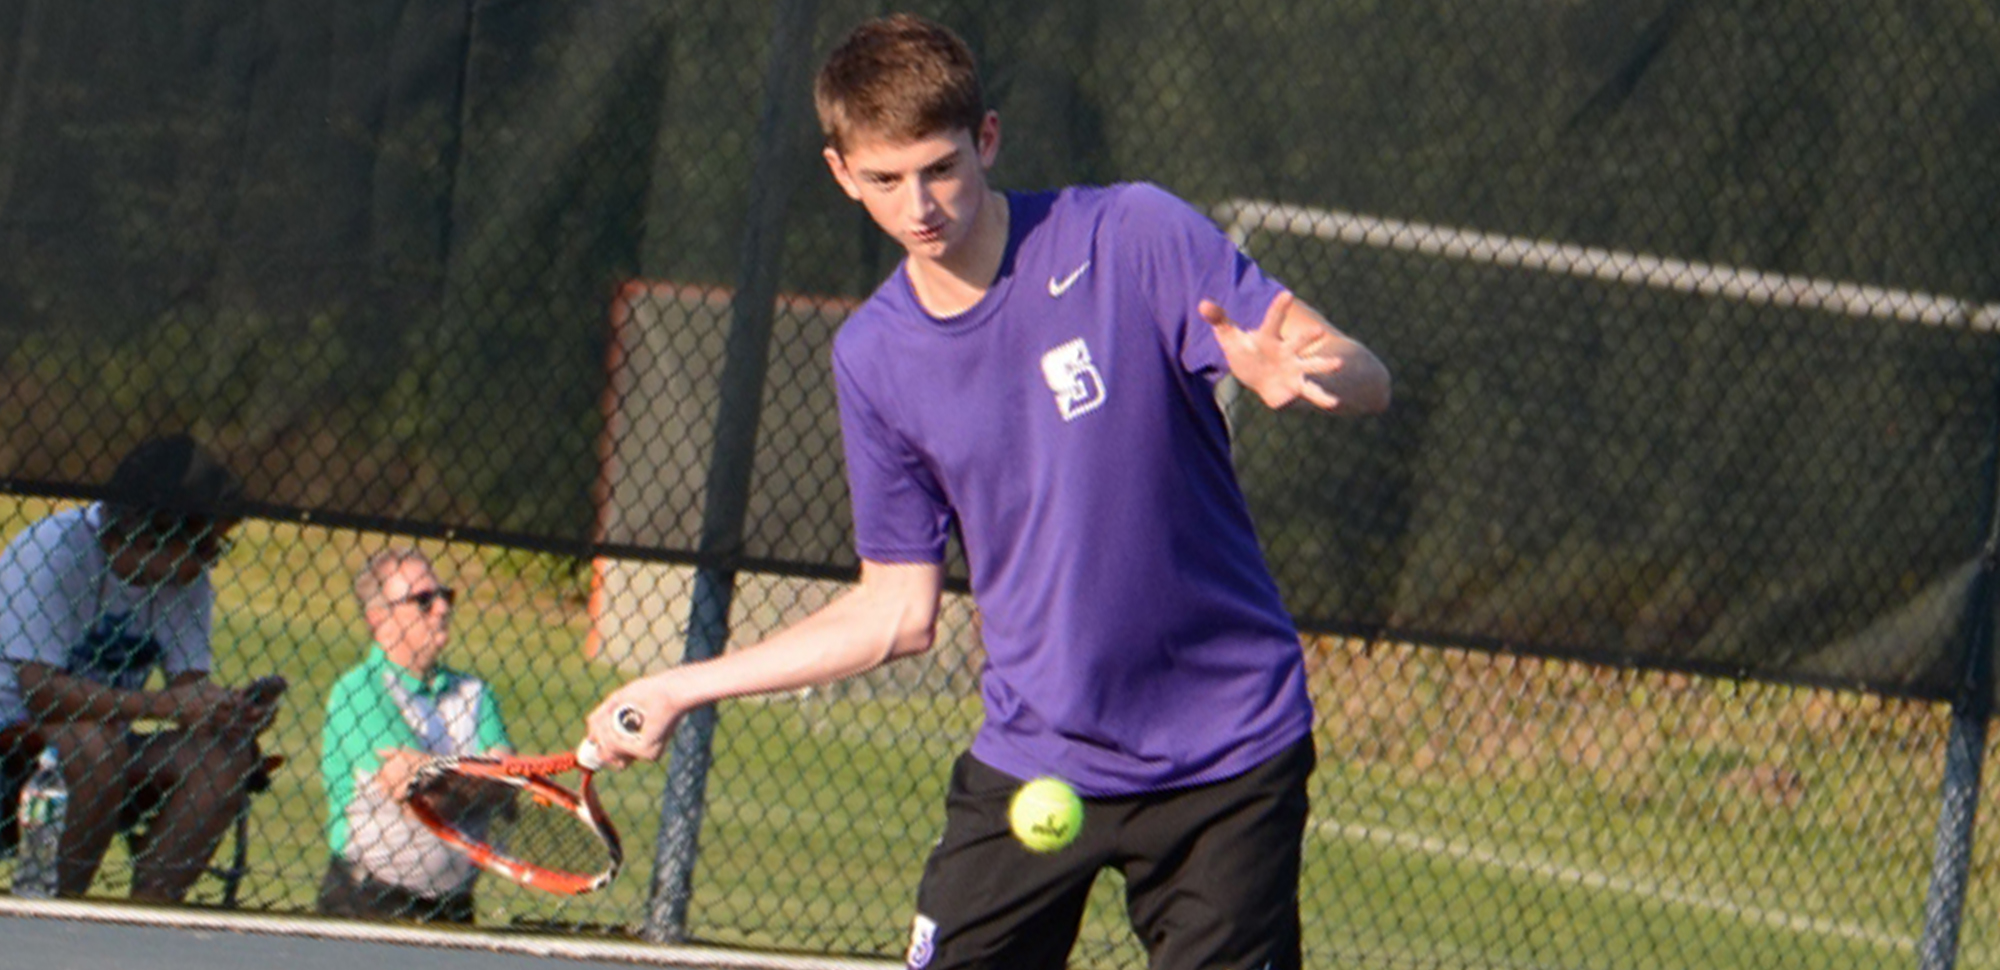 Sophomore Brian Harkins won at both doubles and singles on Wednesday, helping the Royals move to 4-0 in the Landmark Conference with a 6-3 win at Drew on Wednesday.